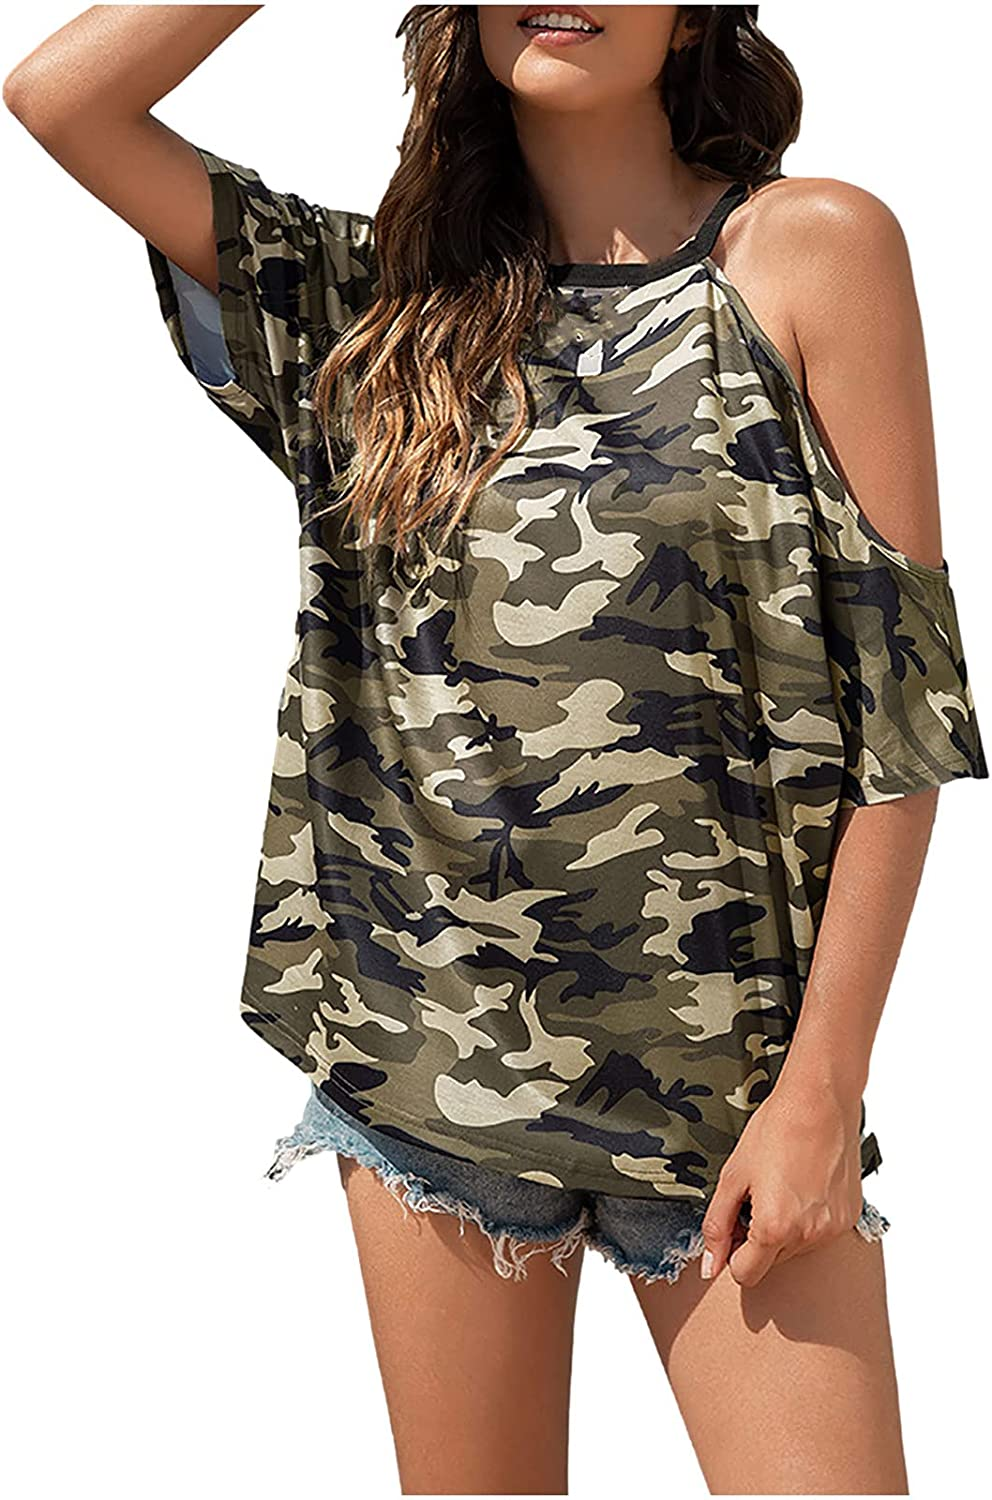 Womens Tops and Blouses,Summer Women's Fashion Casual Camouf Printing O-Neck Short Sleeve T-Shirt Tops